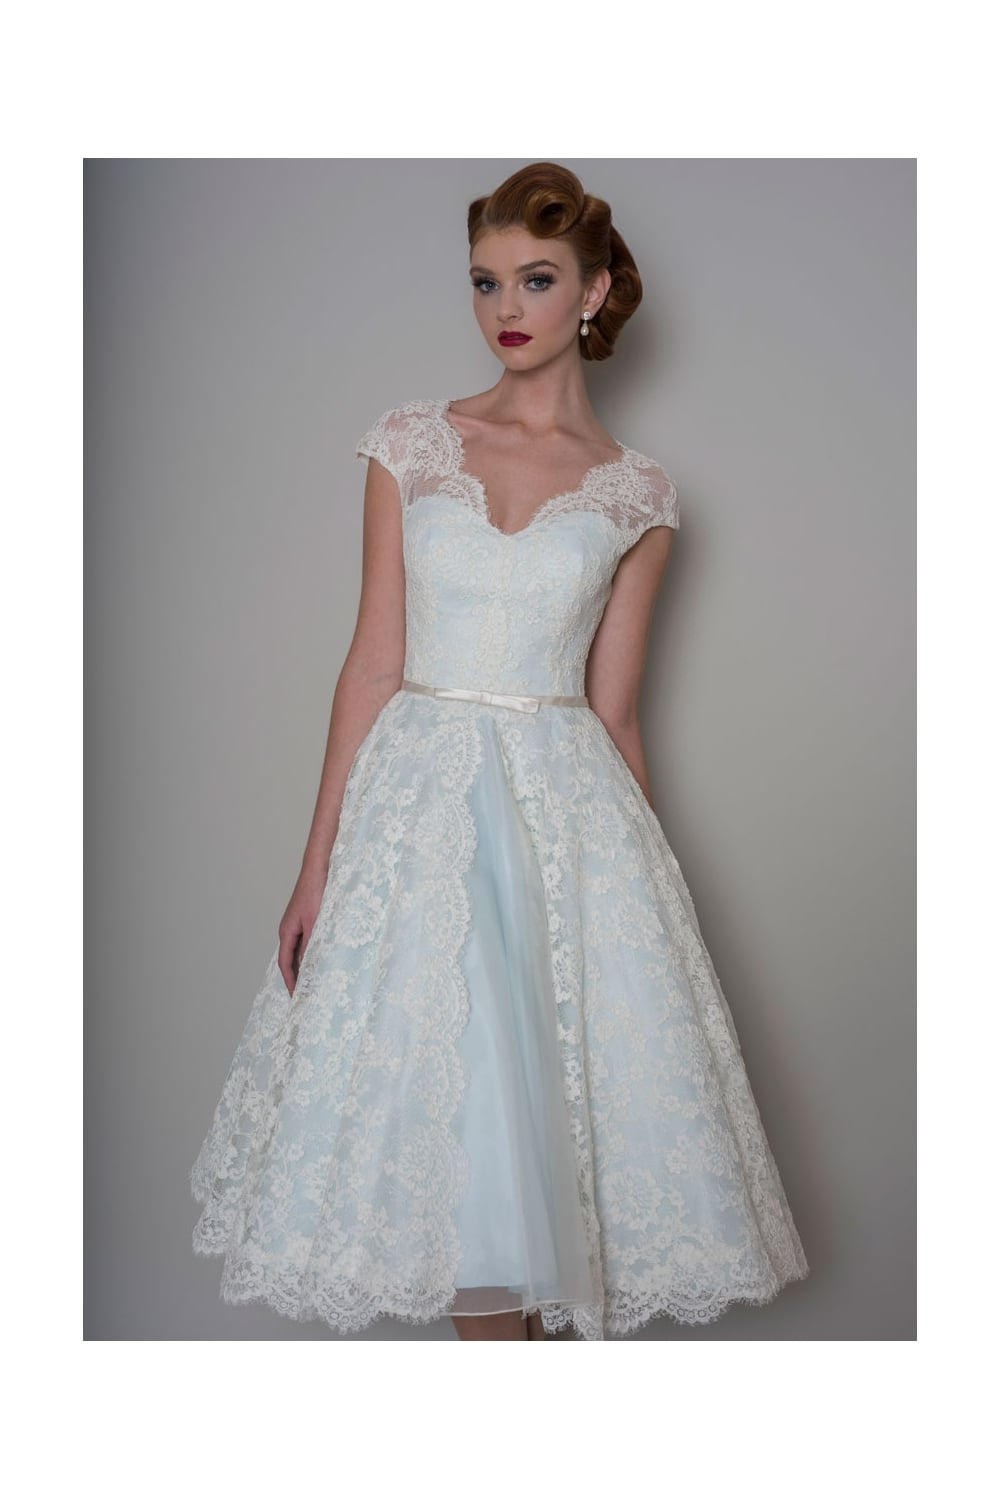 Lb142 bella tea length lace blue wedding dress for Blue wedding dress with sleeves